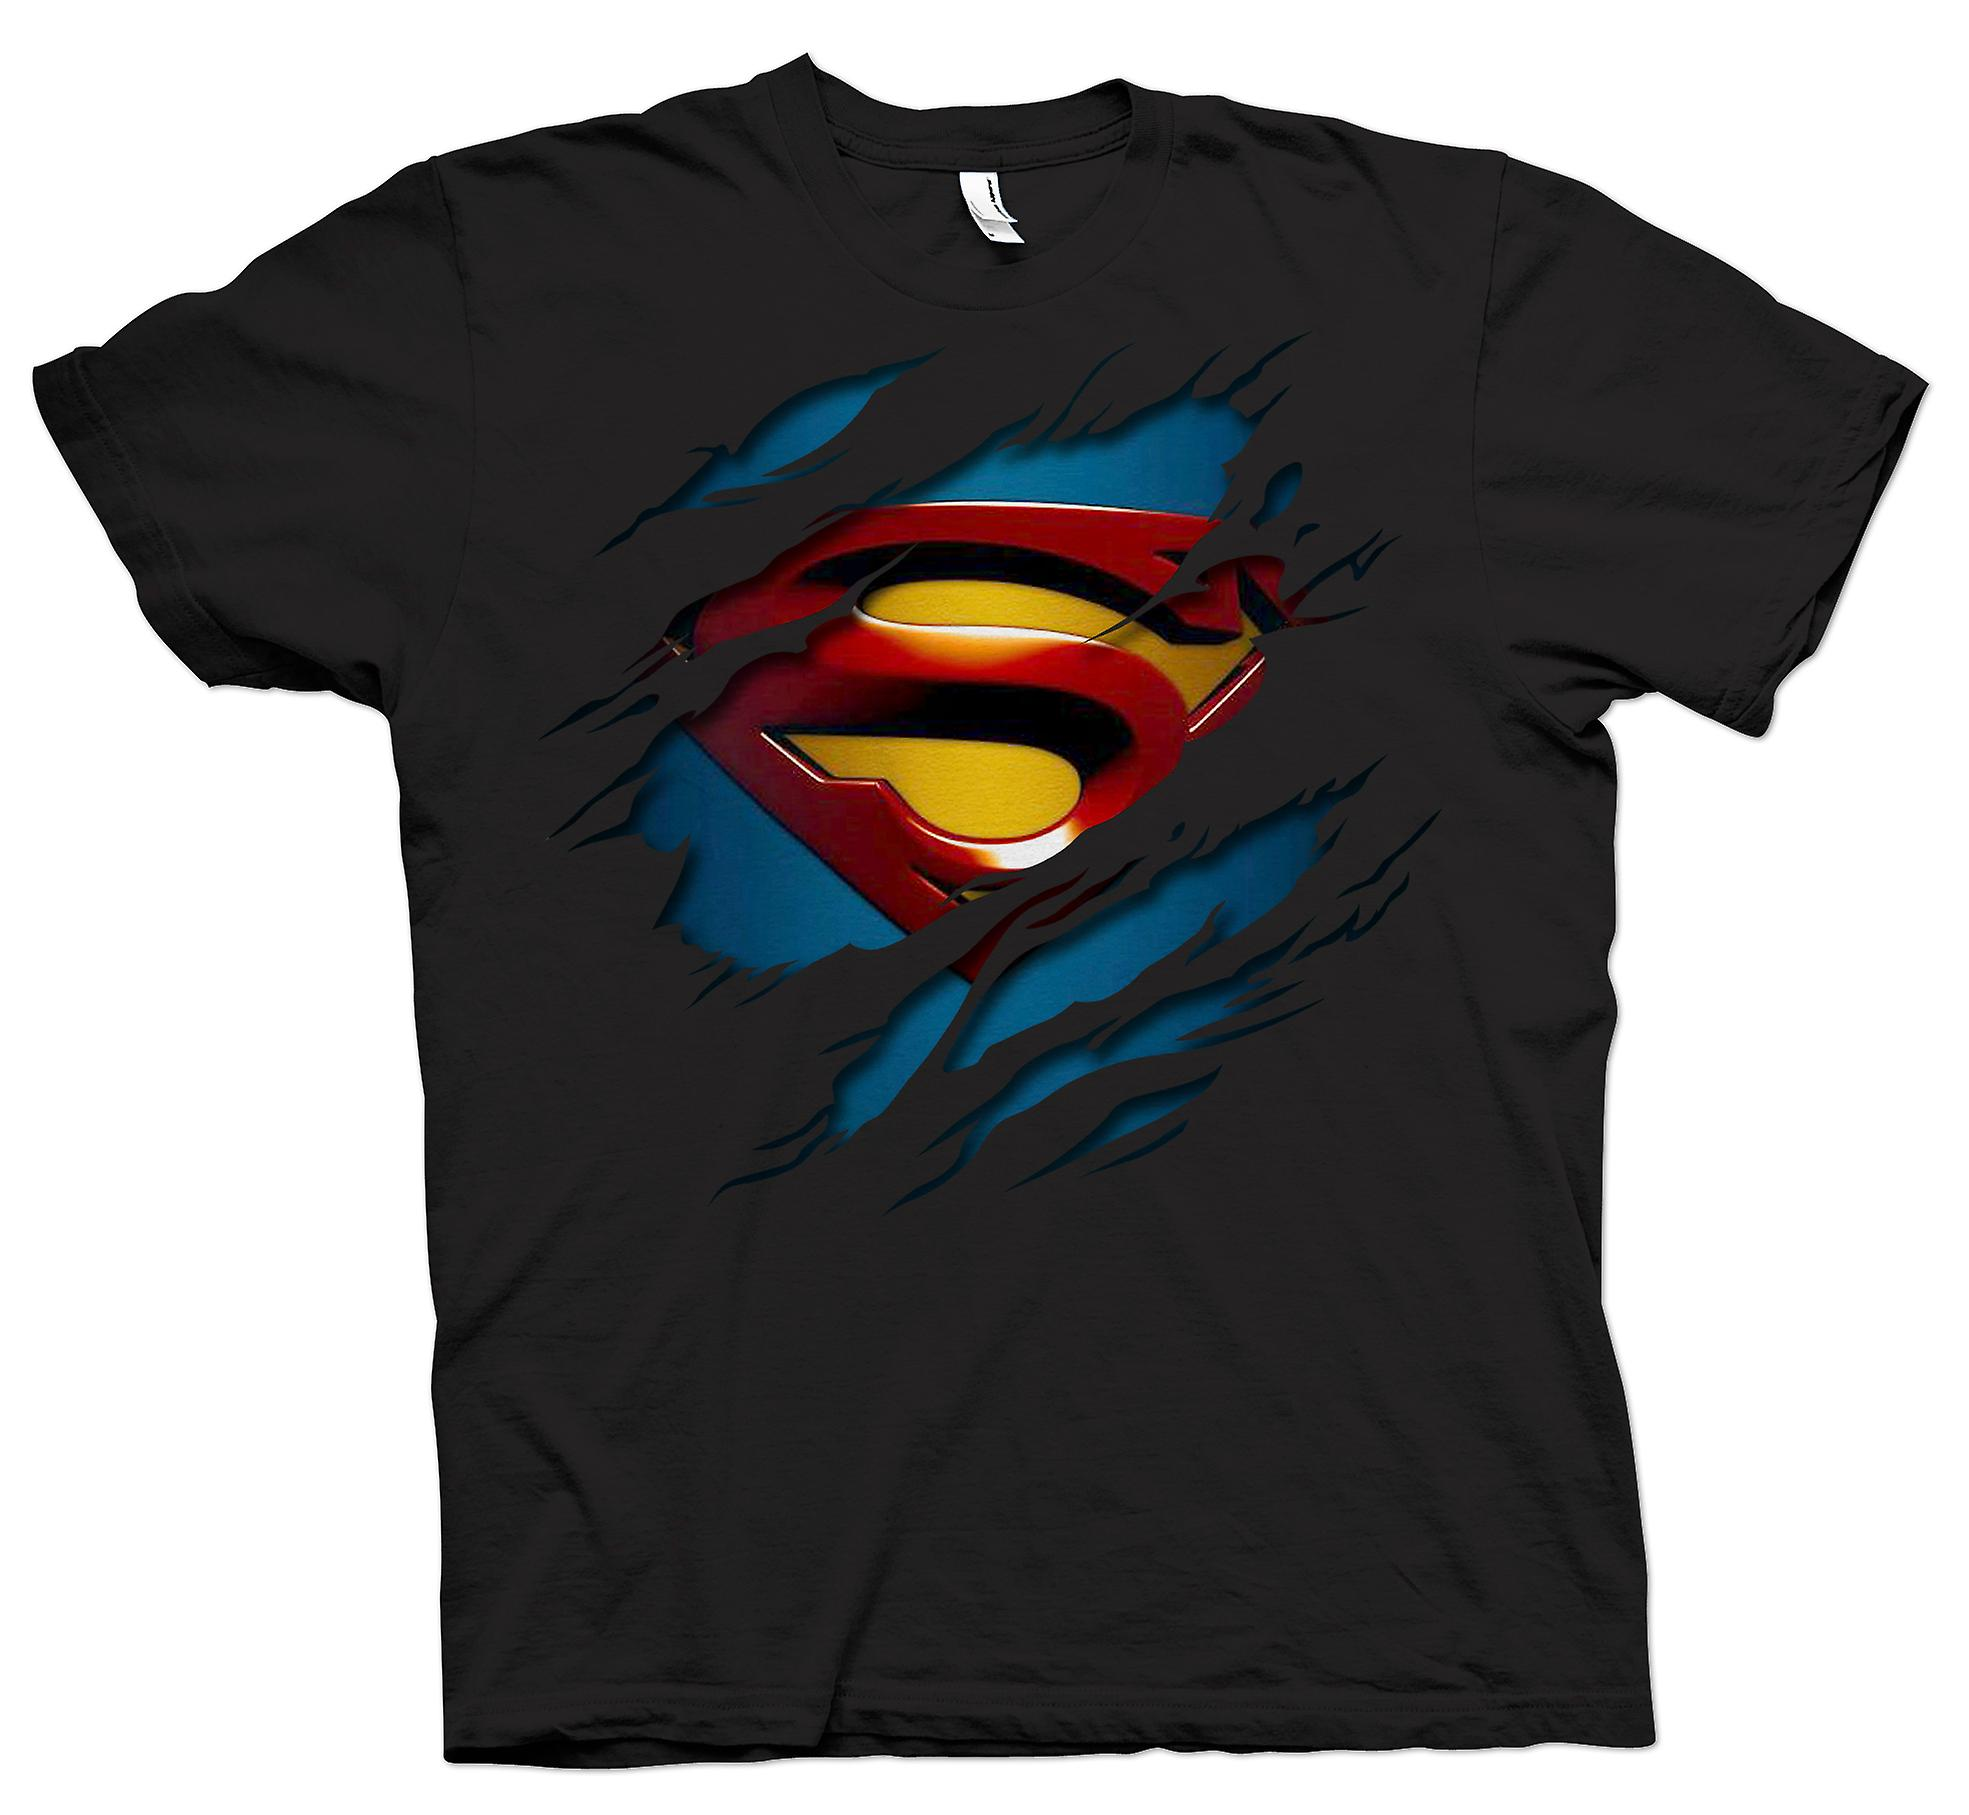 Barn T-shirt - Superman Under skjorta effekt - Action - superhjälte